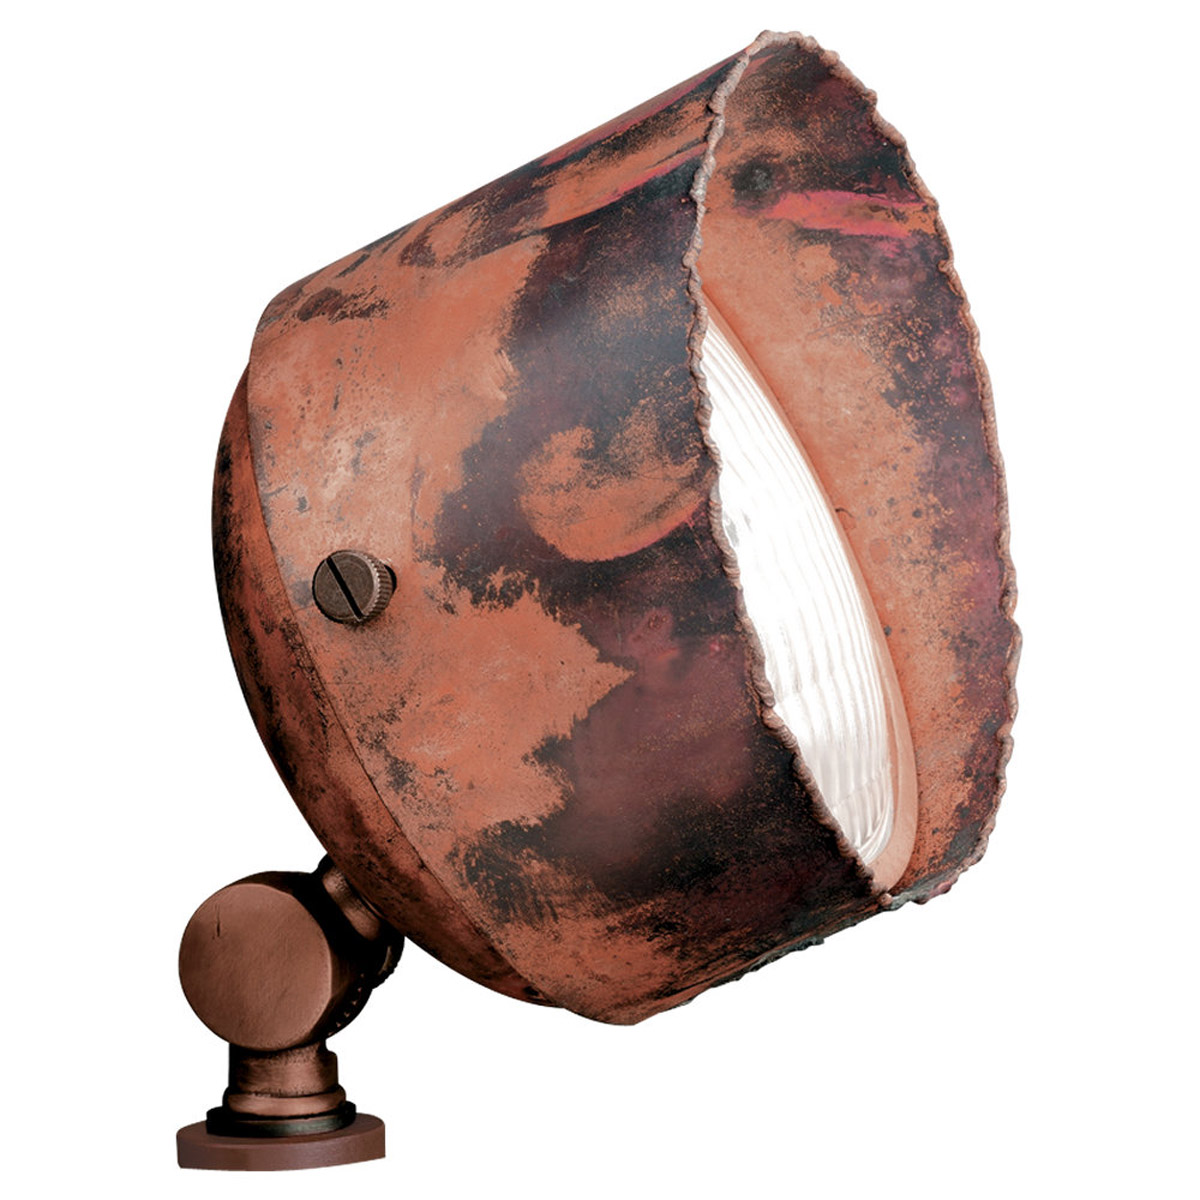 Sea Gull Lighting Signature 1 Light Landscape Accent in Torched Copper 92062-836 photo